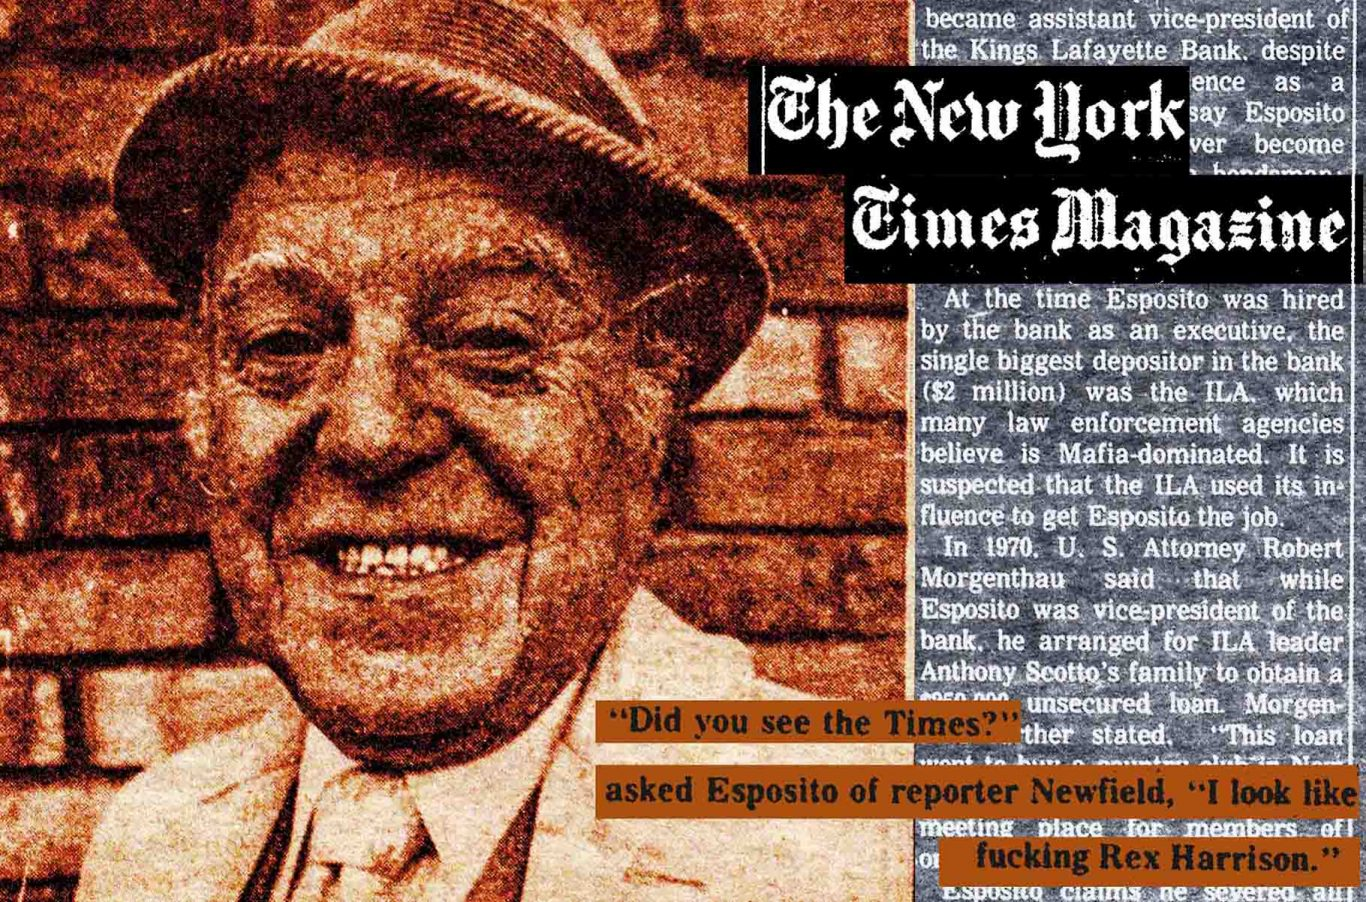 1974 Village Voice article by Jack Newfield about Democratic machine politician Meade Esposito's ties to the mob